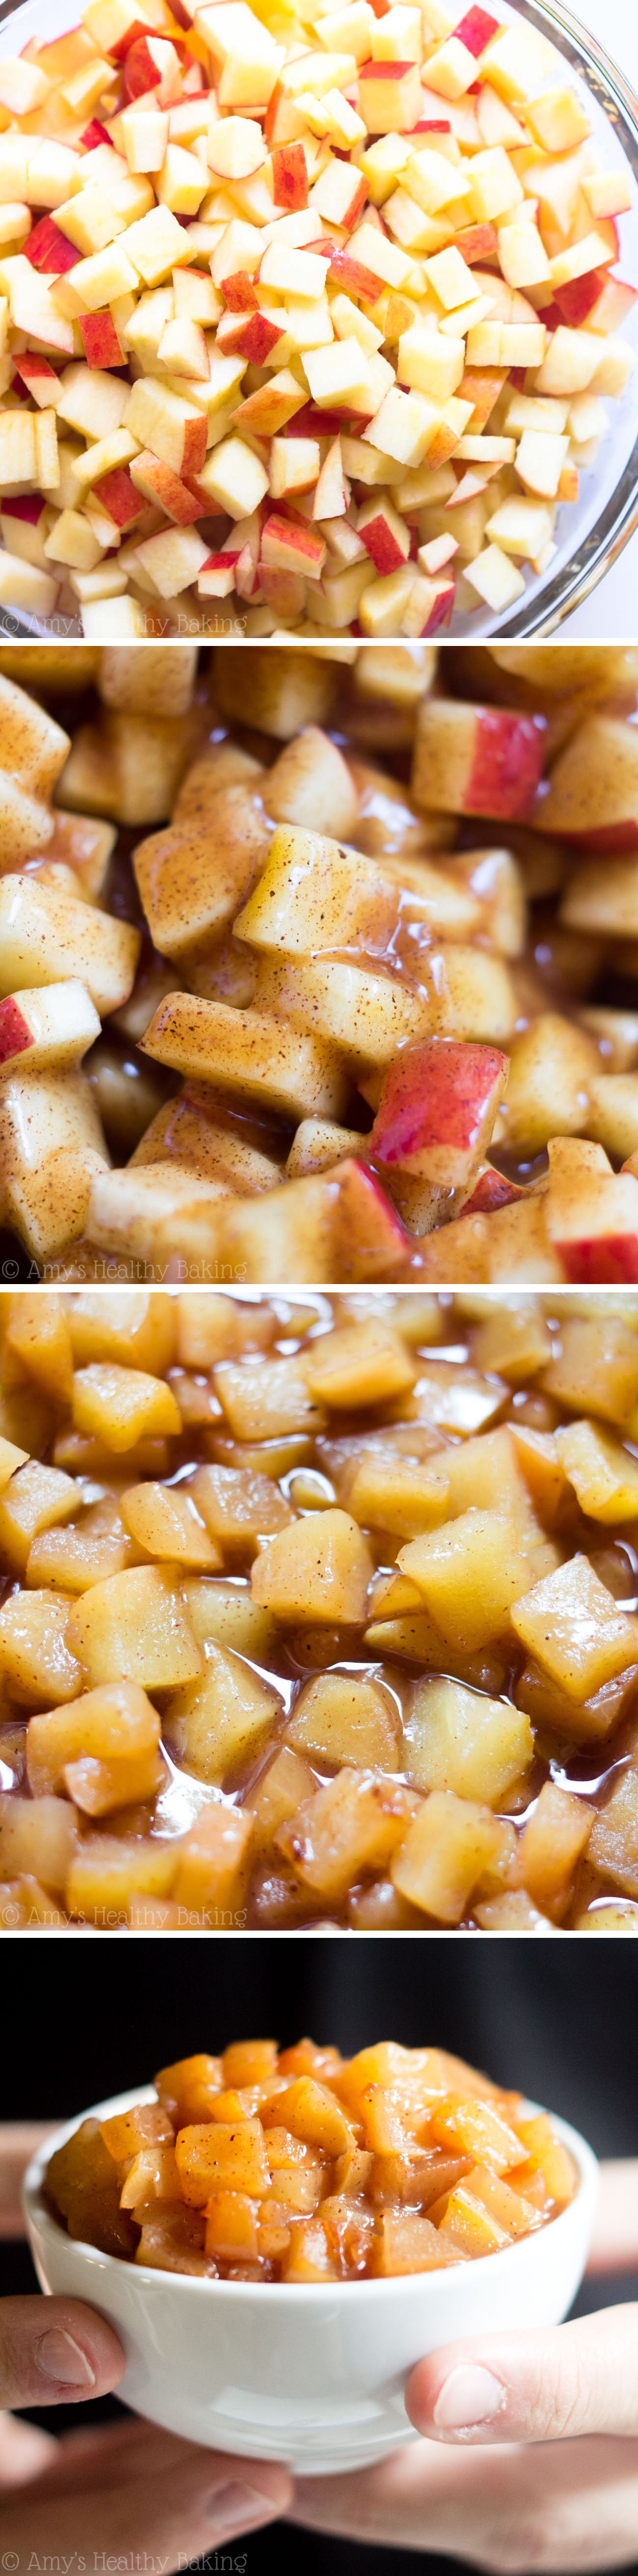 Slow Cooker Apple Pie Filling the easiest recipe you'll